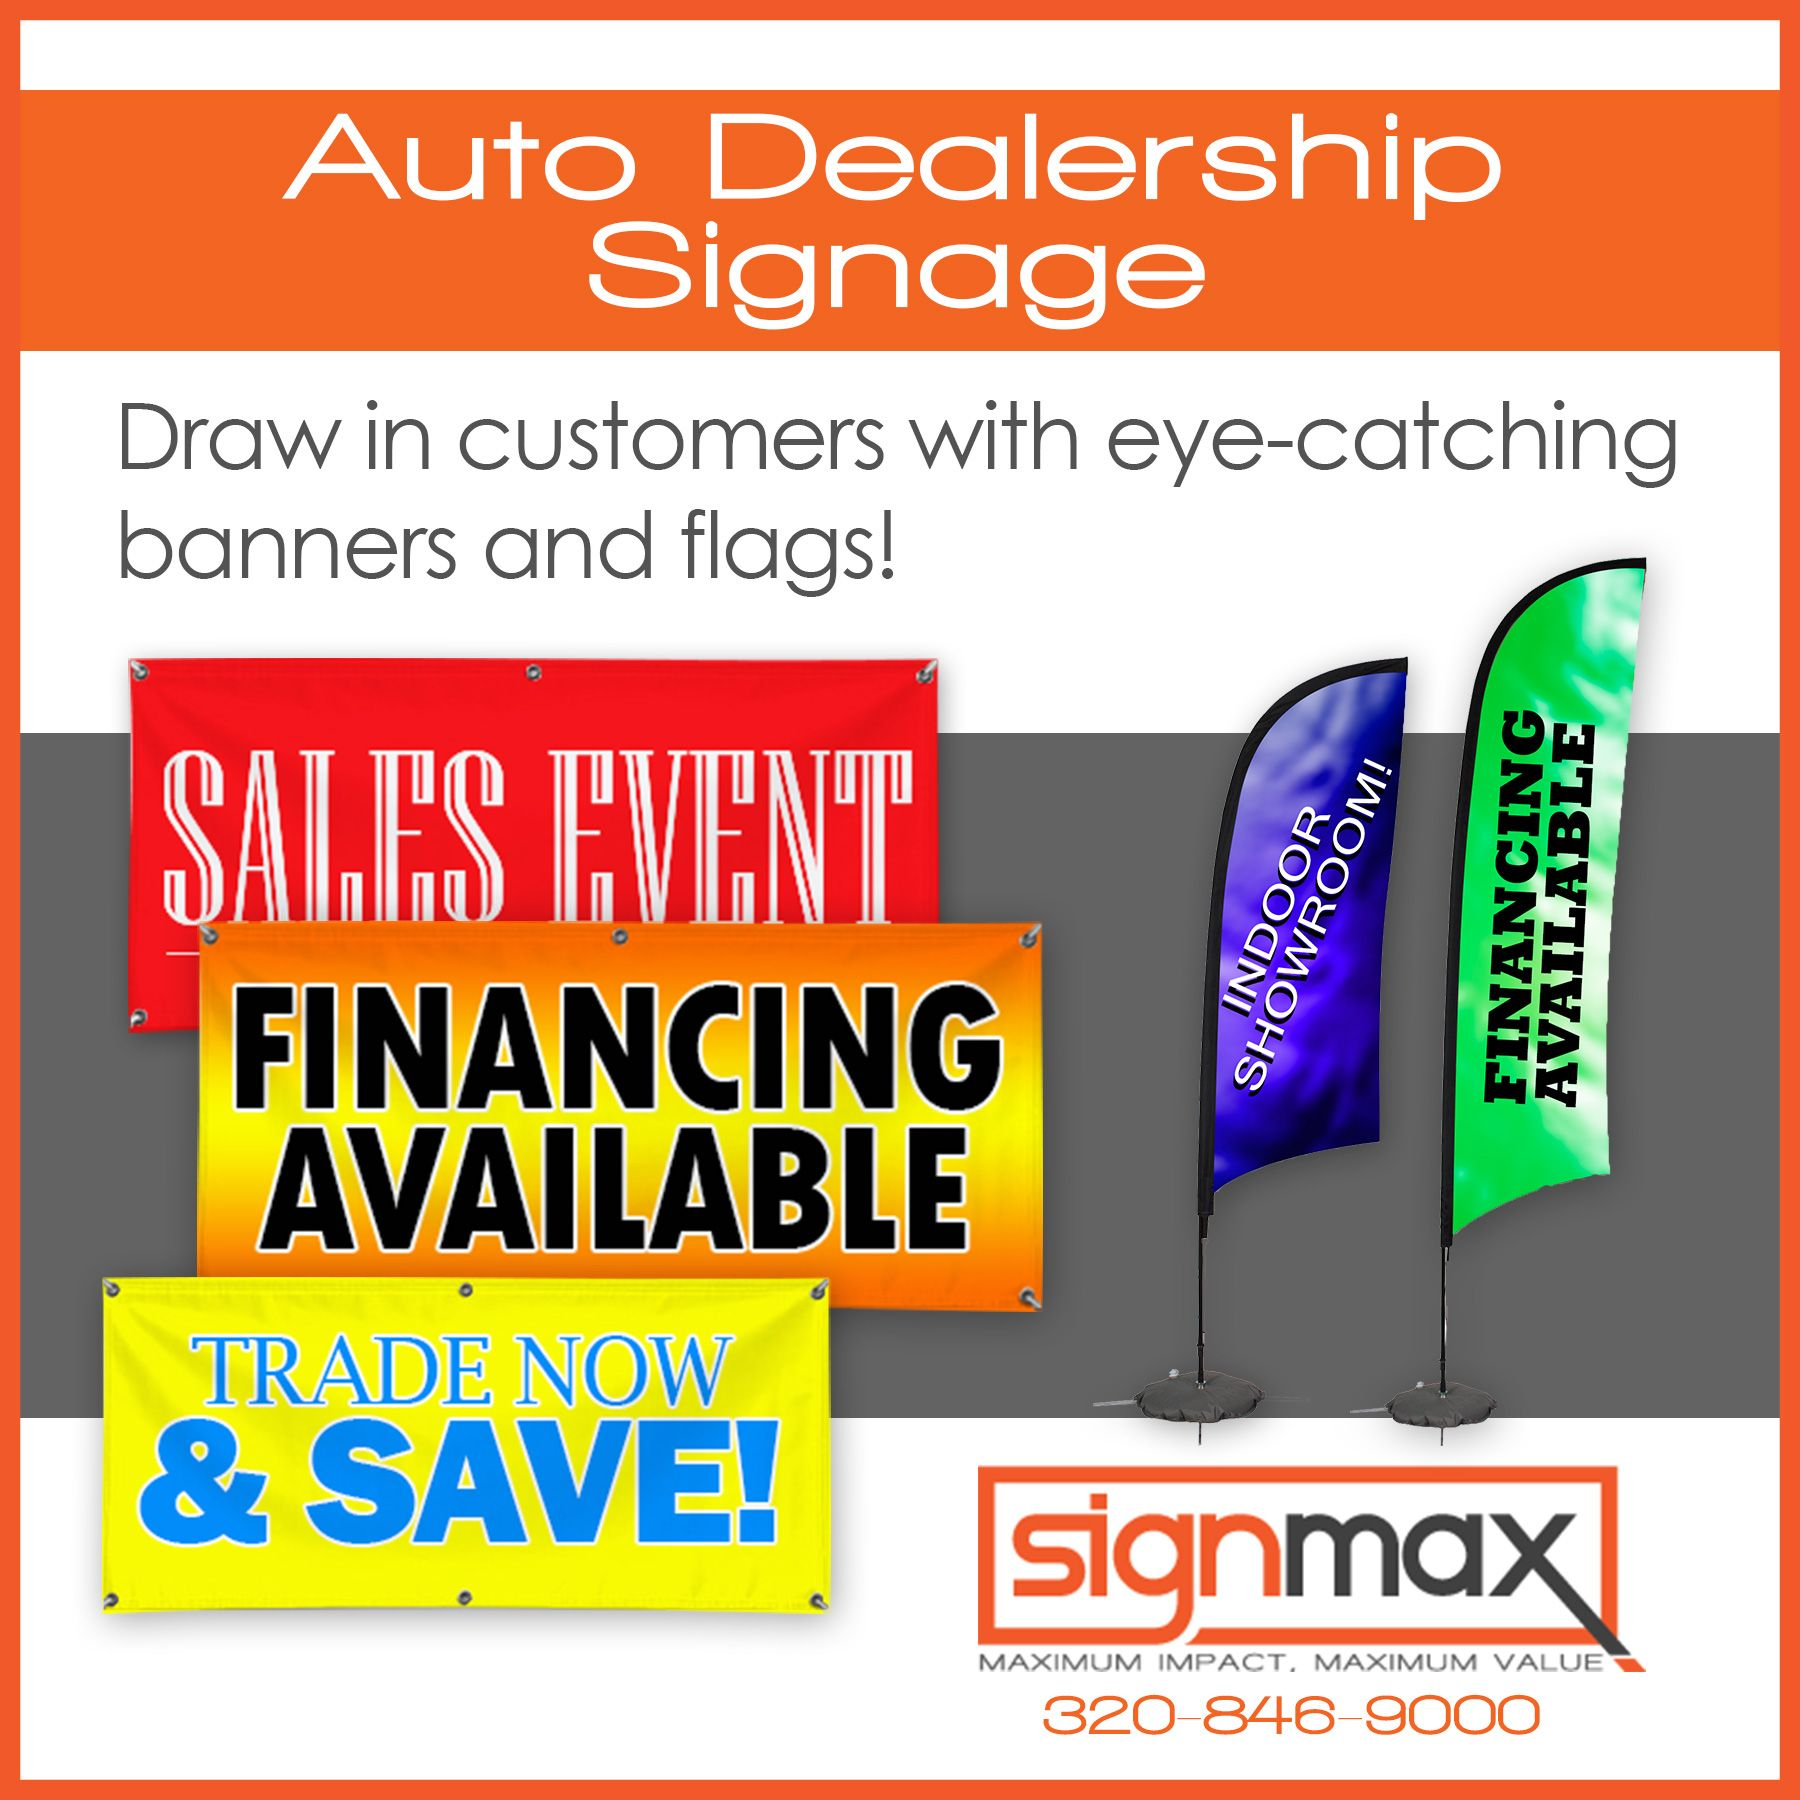 auto dealership signage draw in customers with eye catching